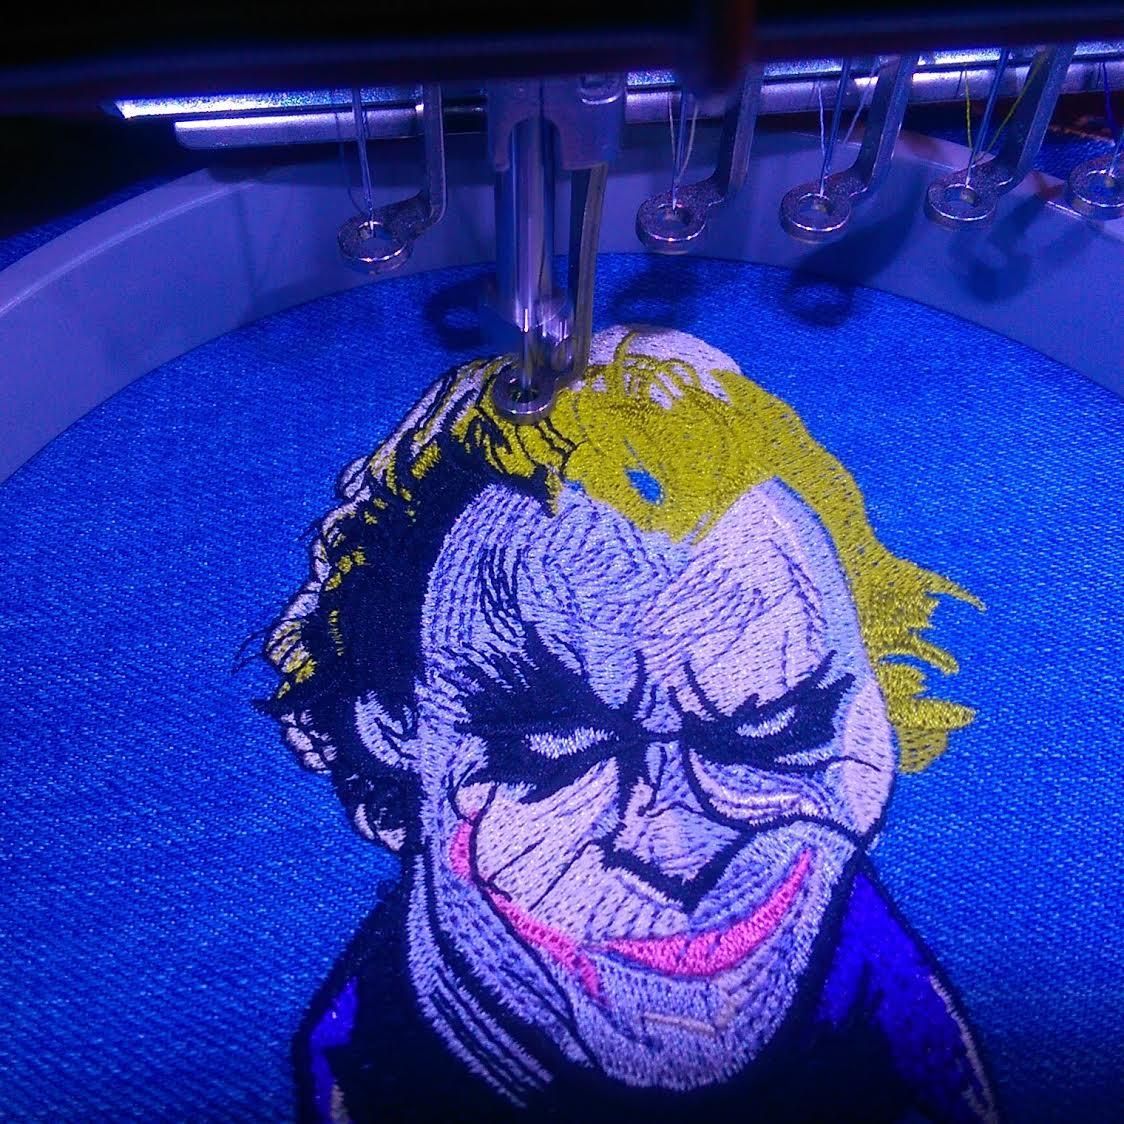 Joker's smirk embroidery design